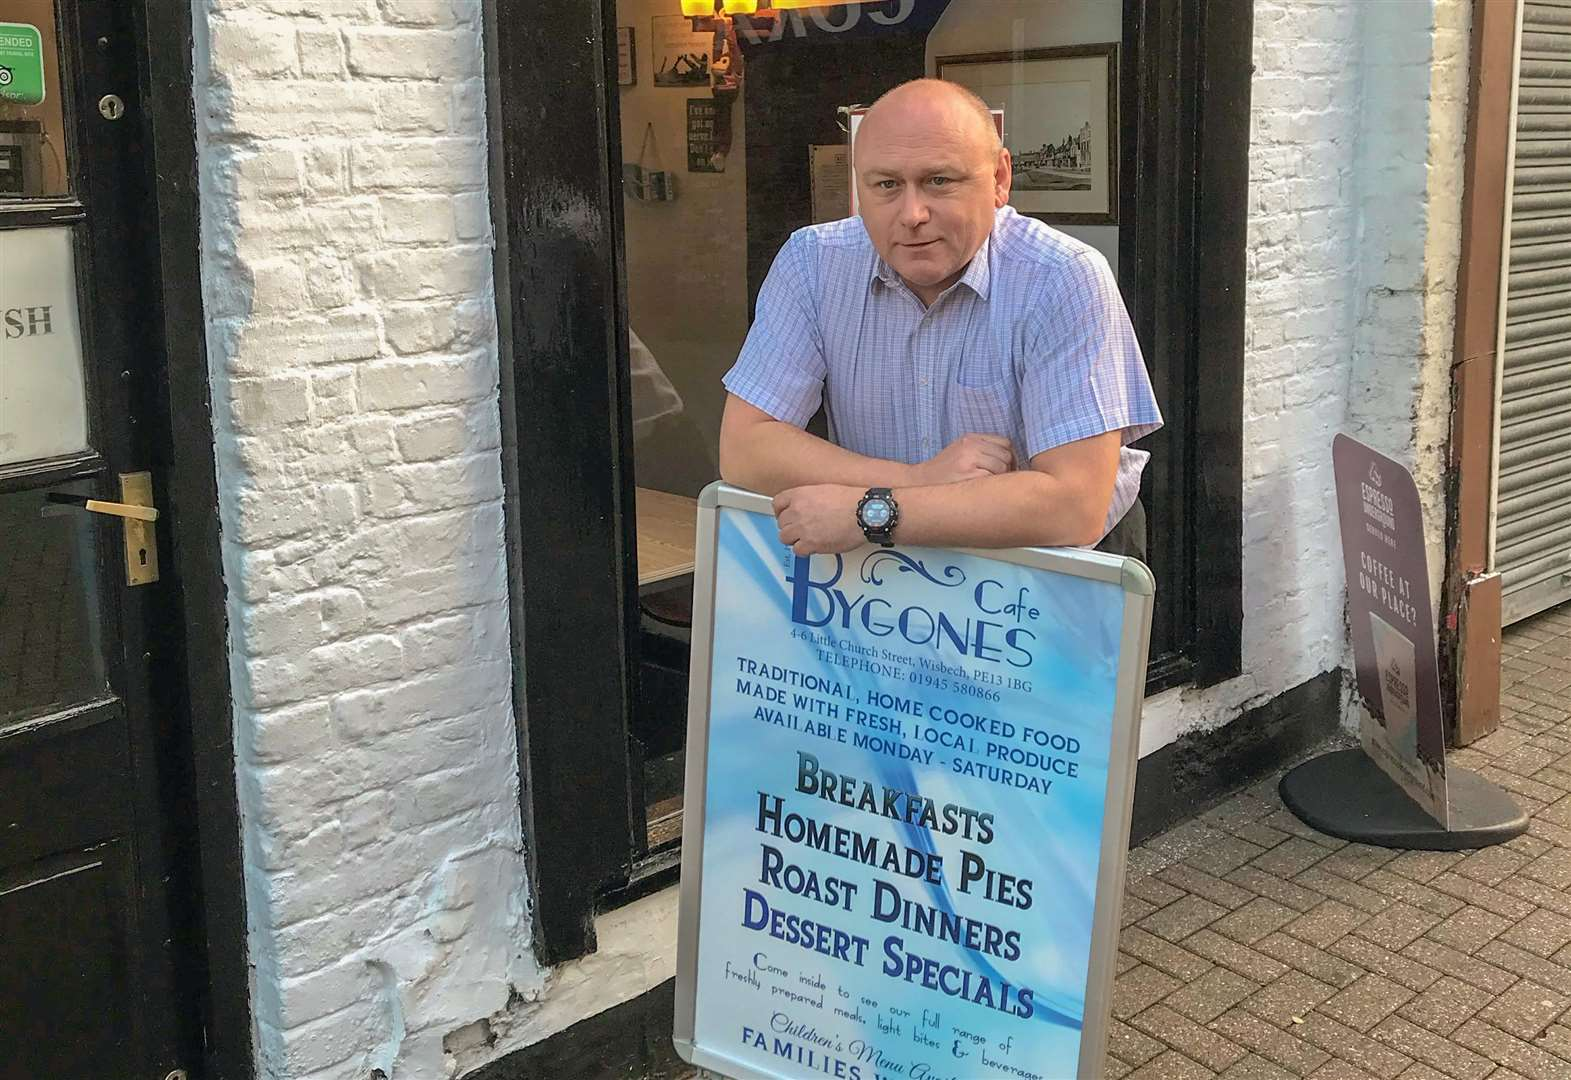 Wisbech councillor and businessman asks fellow traders 'would you pay for tow centre security guard'?